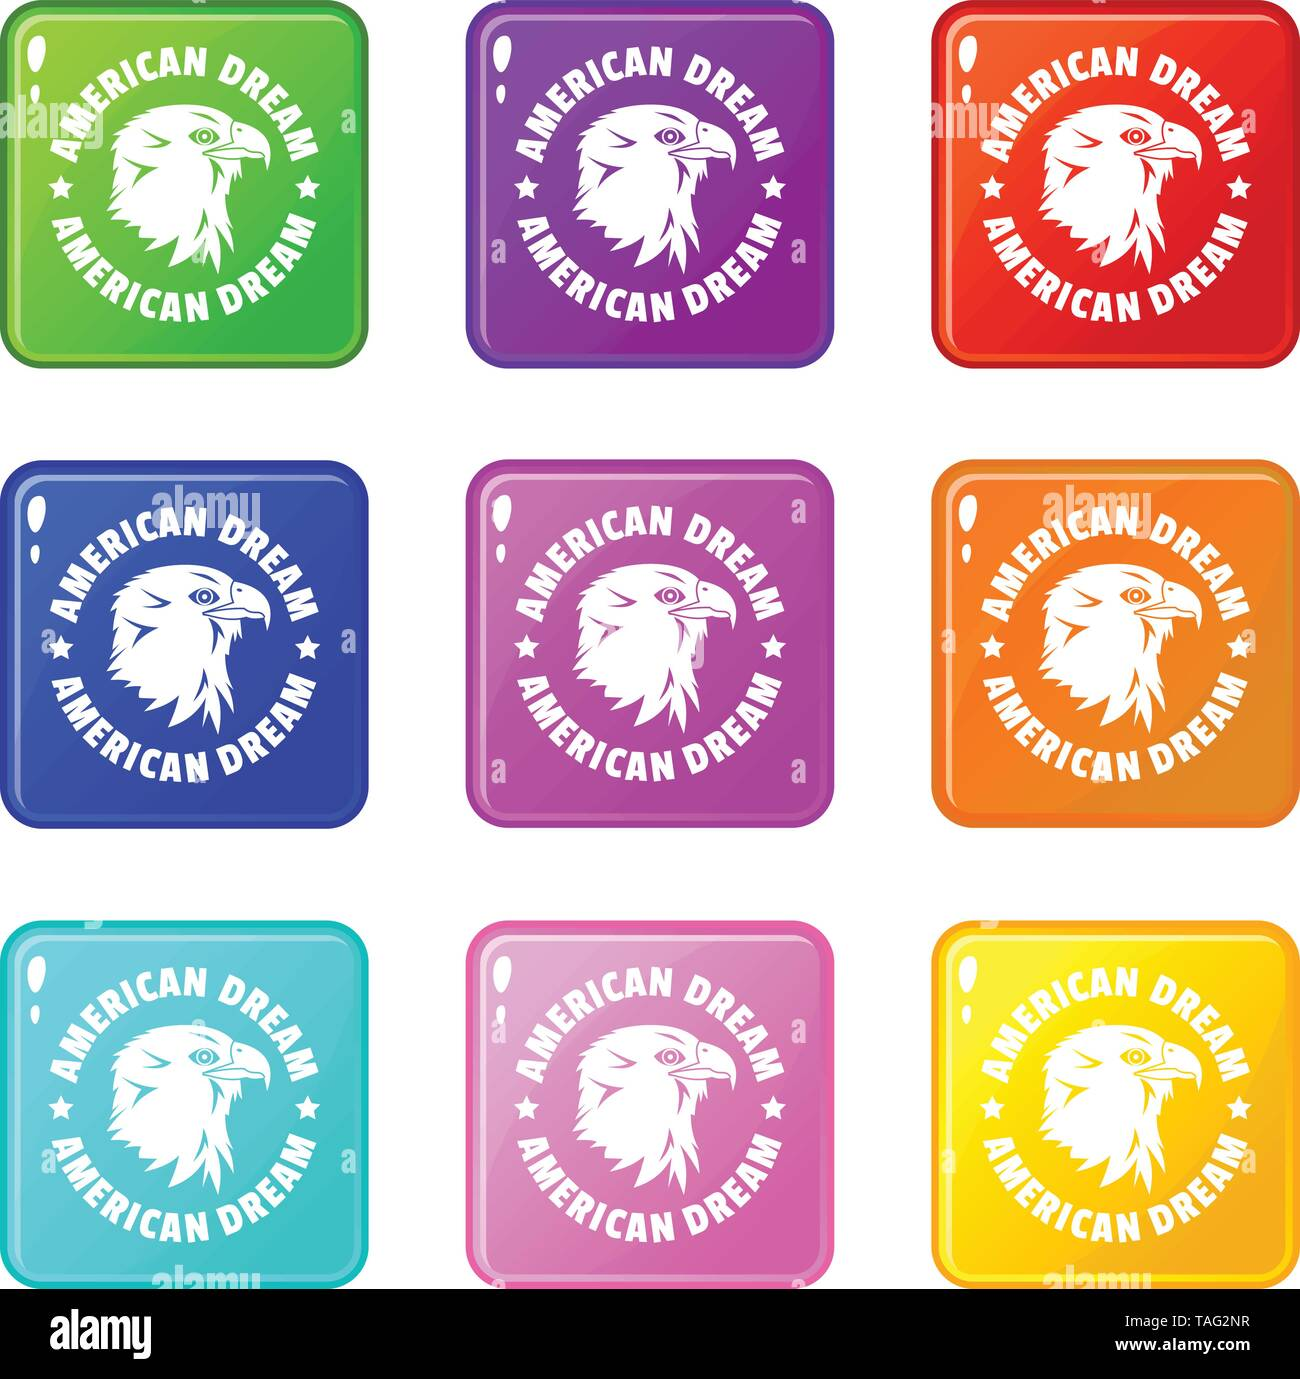 American dream eagle icons set 9 color collection - Stock Image